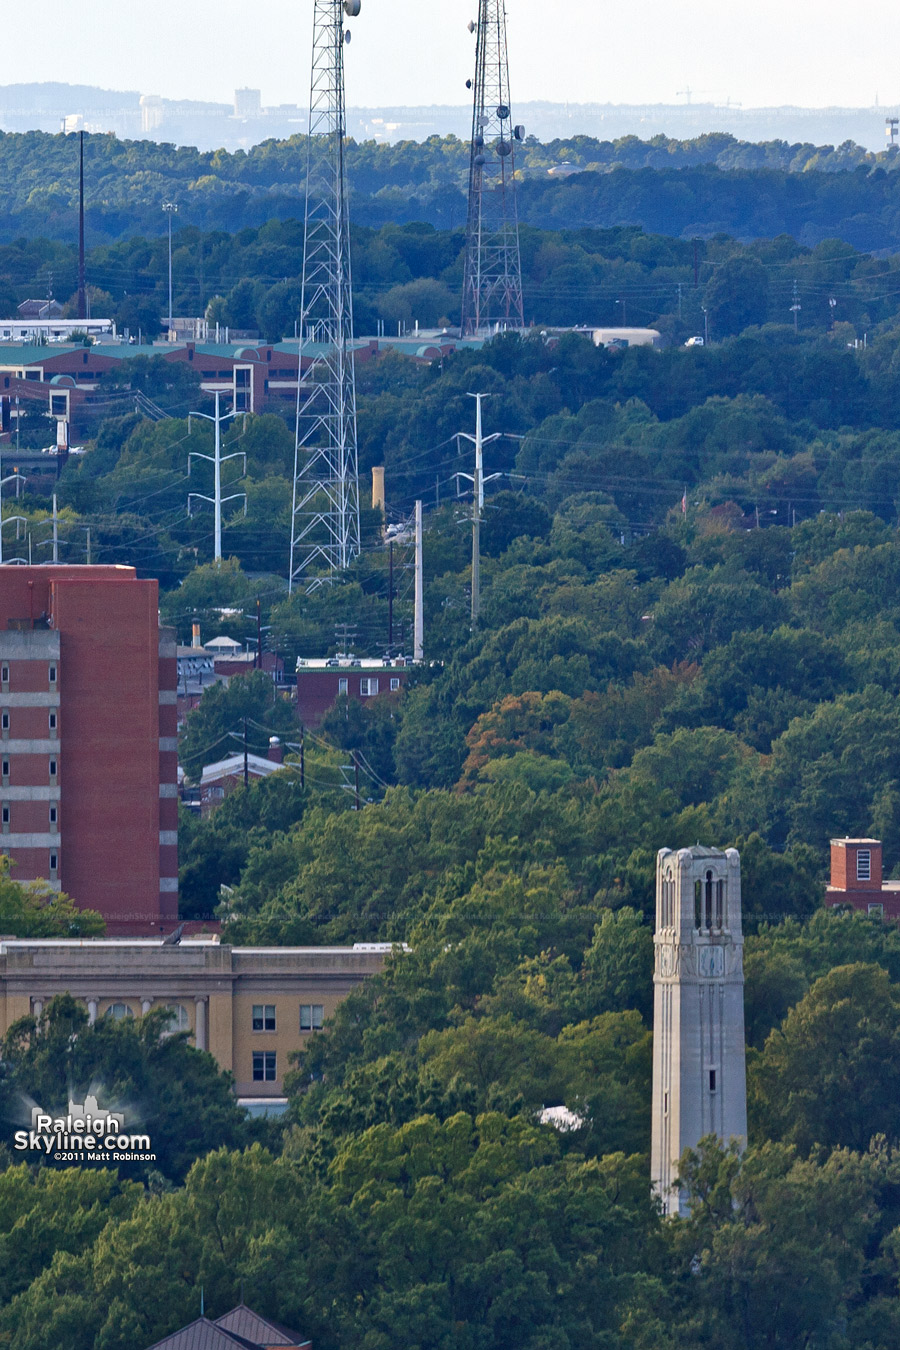 The NC State Belltower...with UNC-Chapel Hill visible 25 miles away on the horizon!